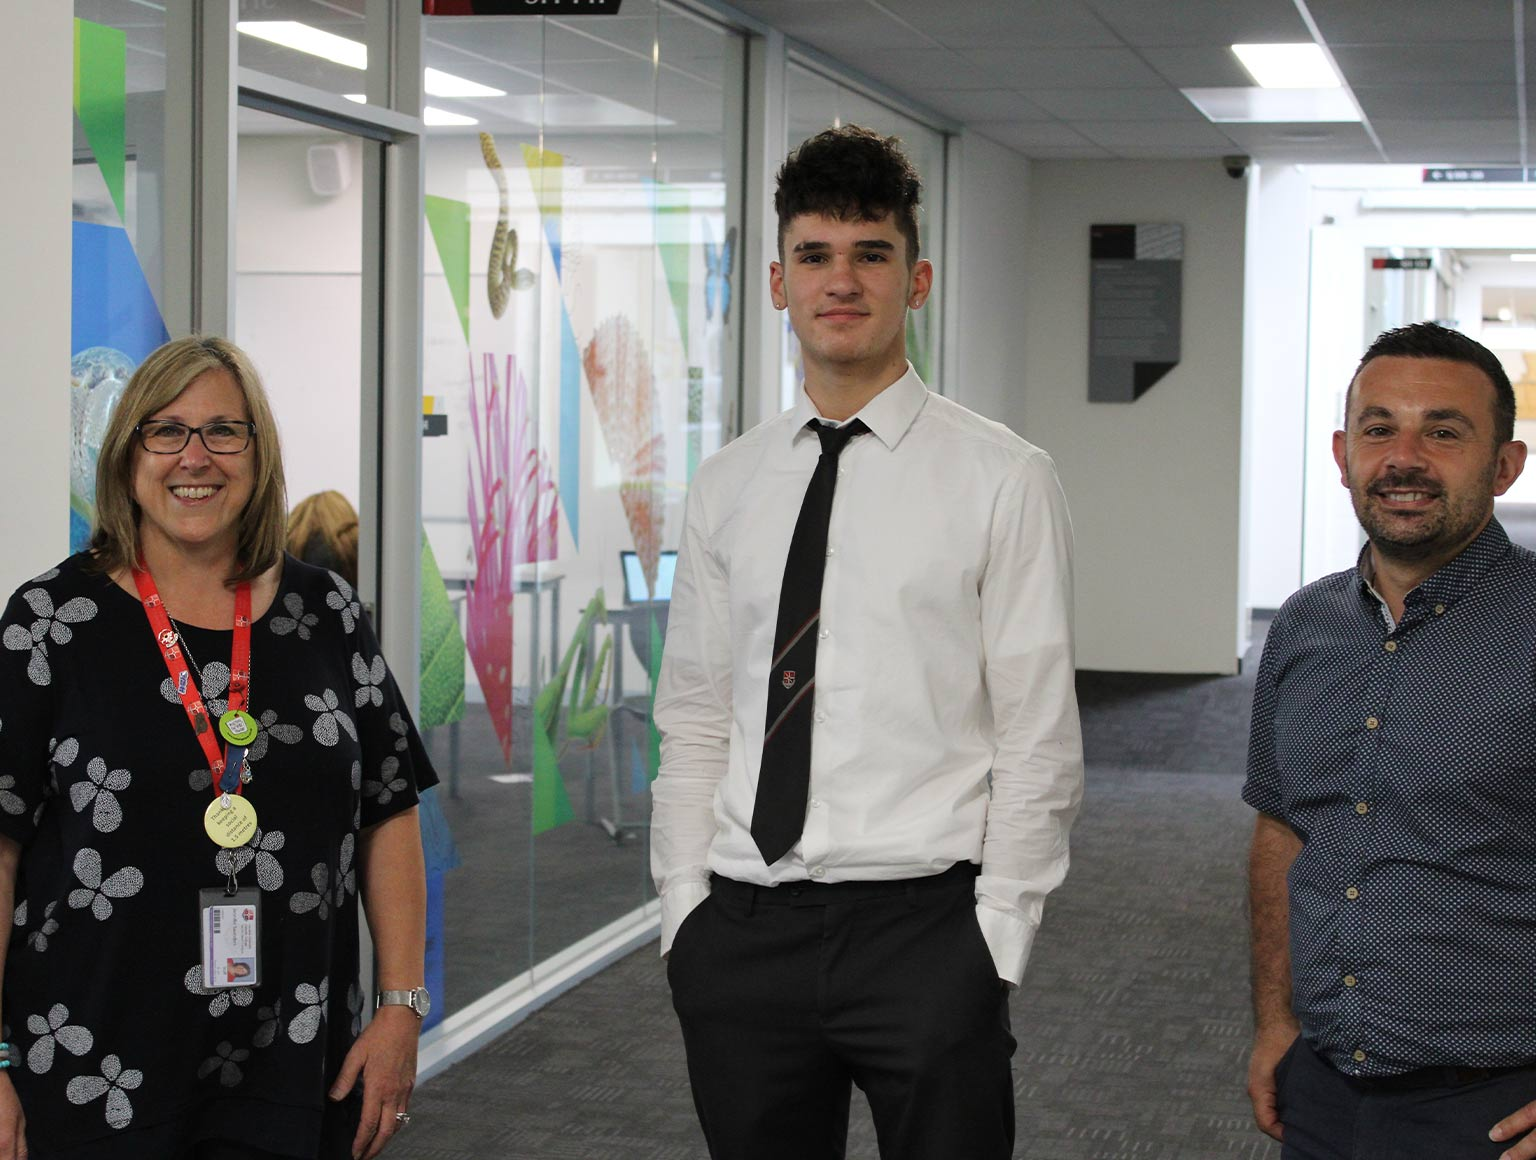 From left, Jennifer Saunders, Noah Grech and Ray Mizzi, VCAL coordinator; Photo by Richard Liistro